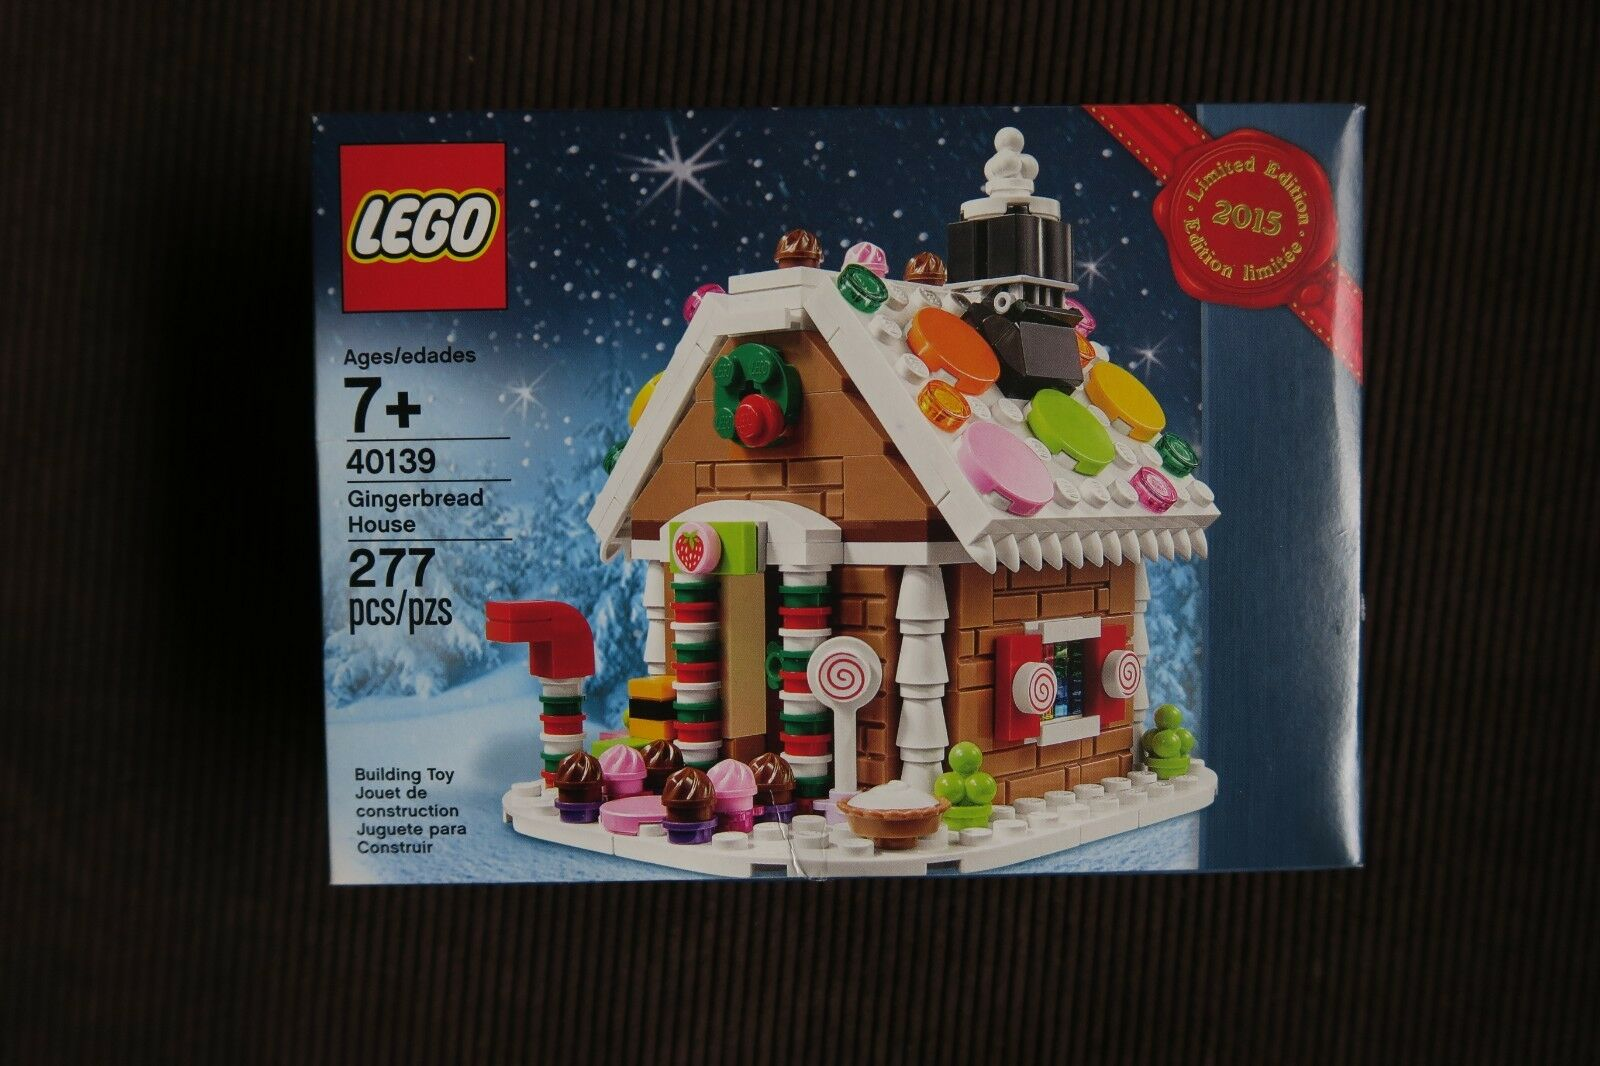 New In Box - LEGO Holiday Gingerbread House (40139) - Christmas 2015 Promotion